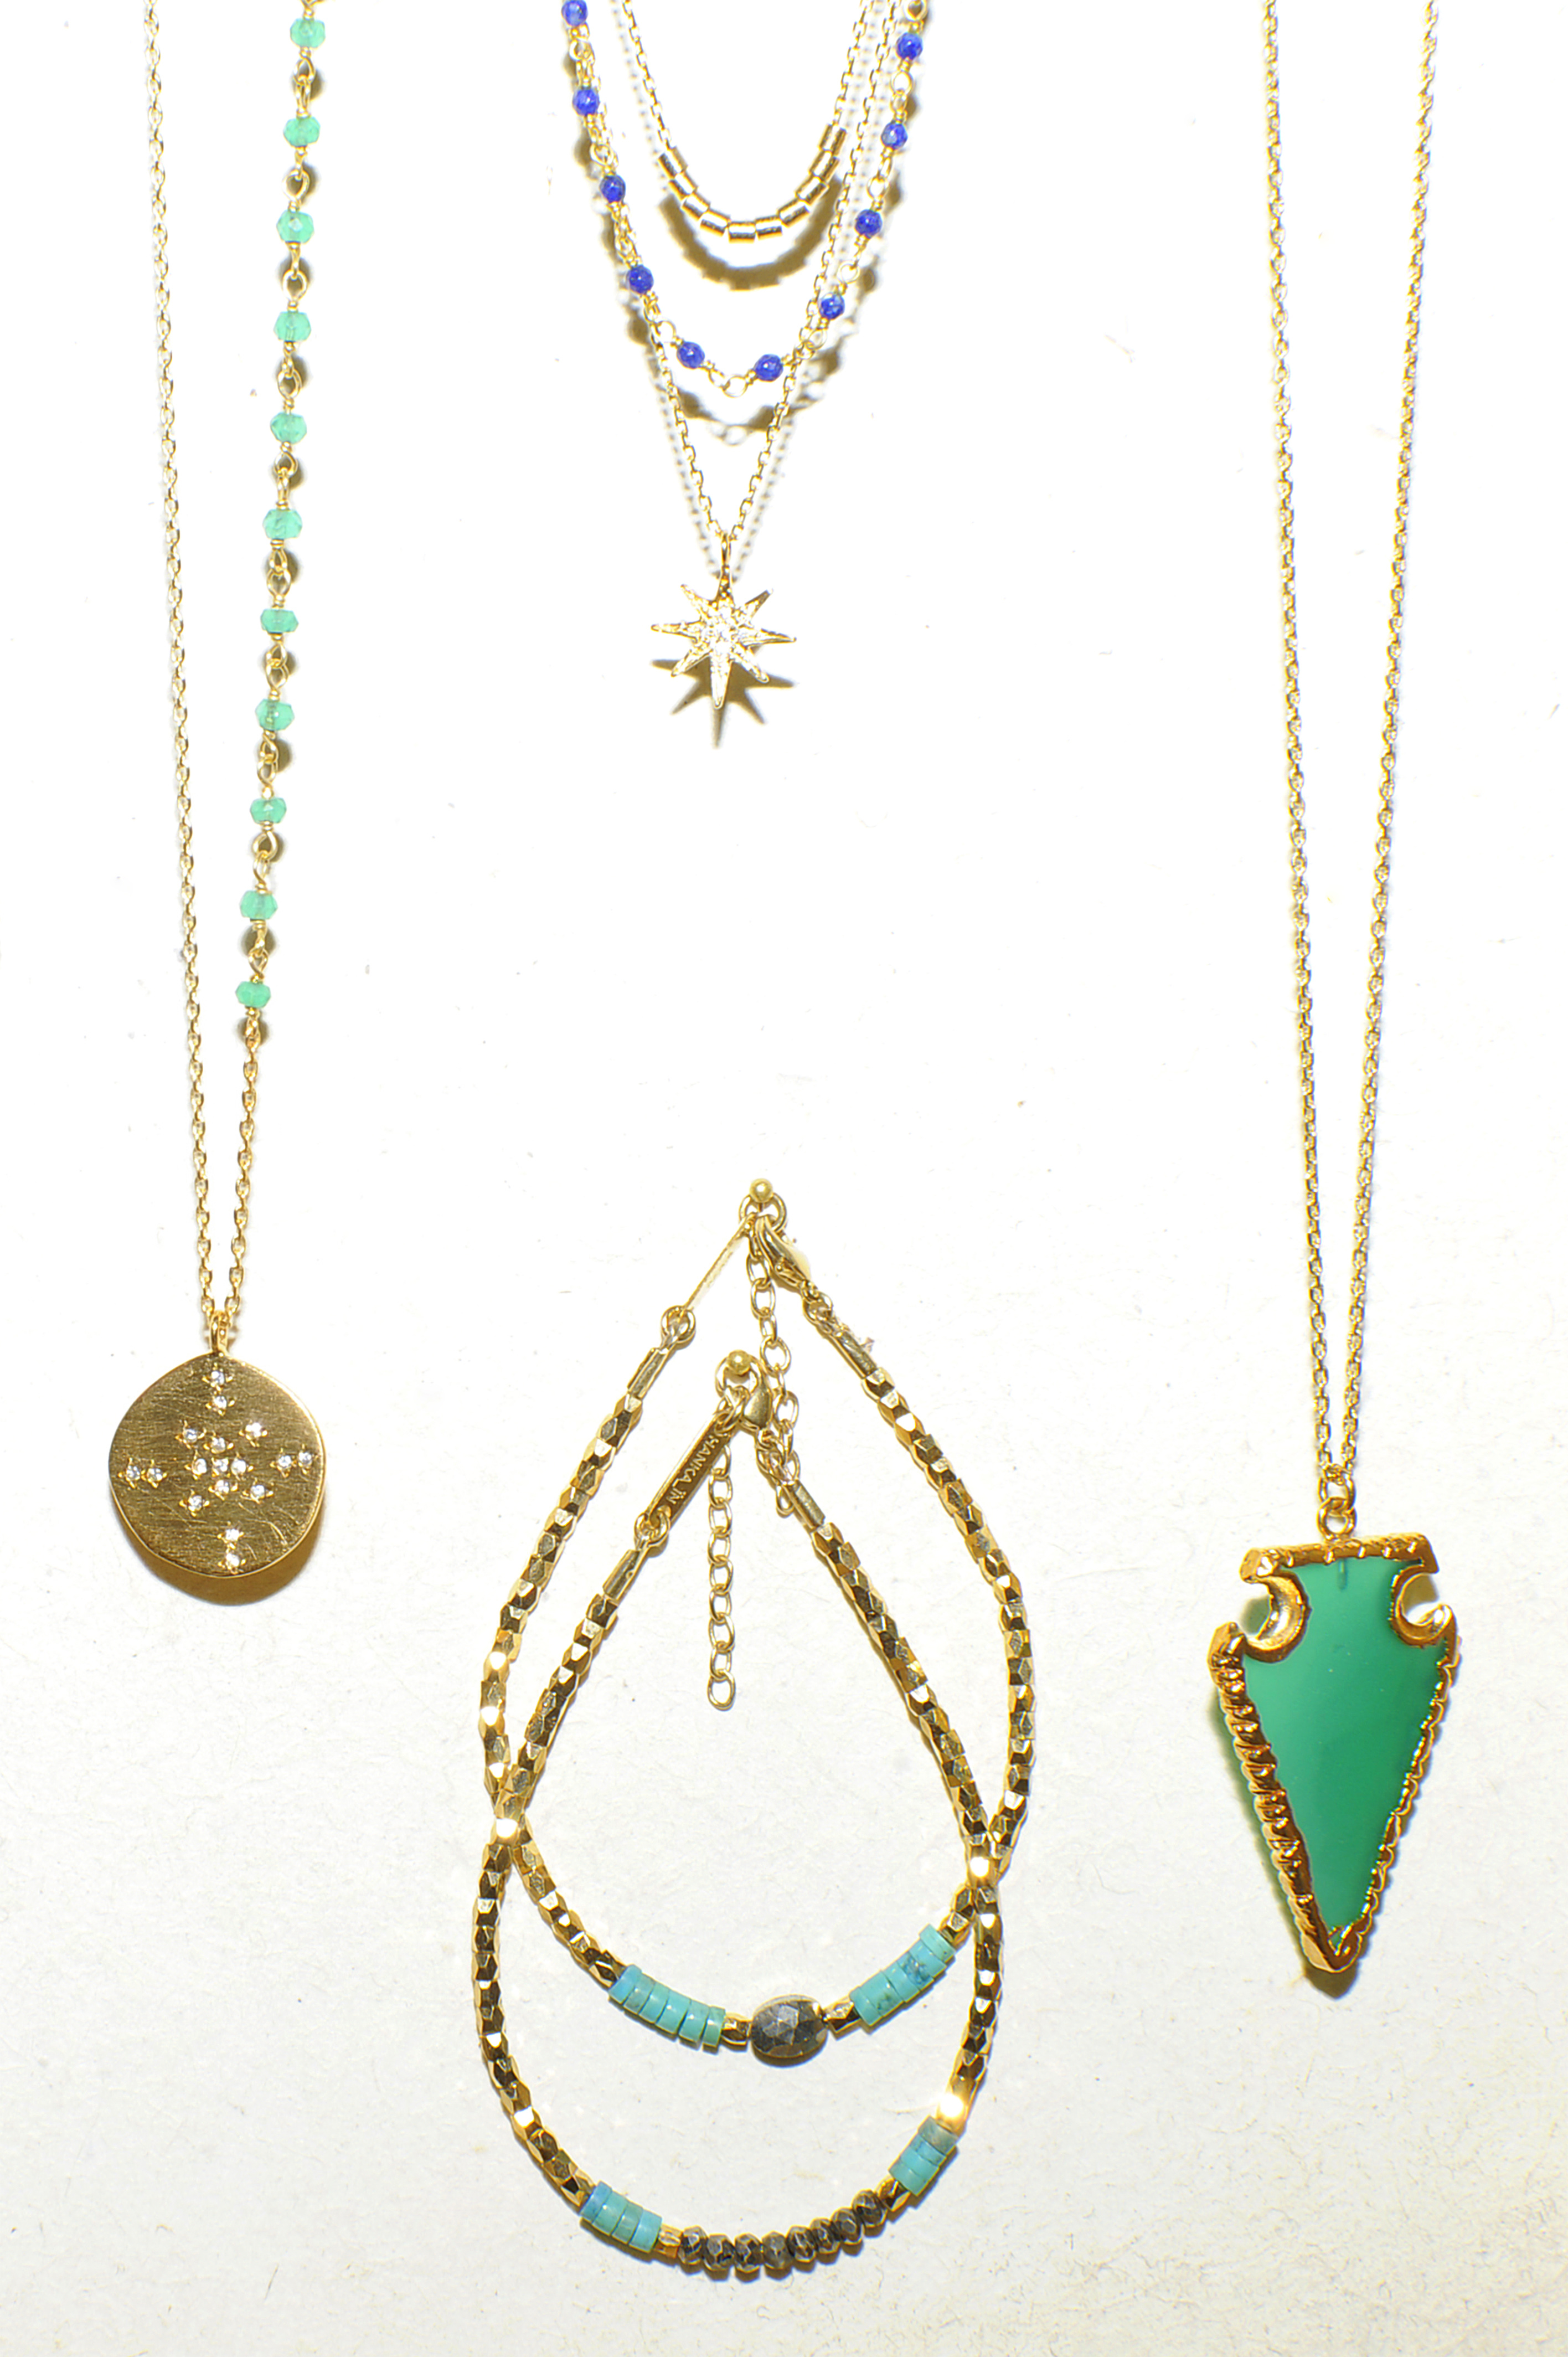 Fine and fantasy jewelry by Hanka In